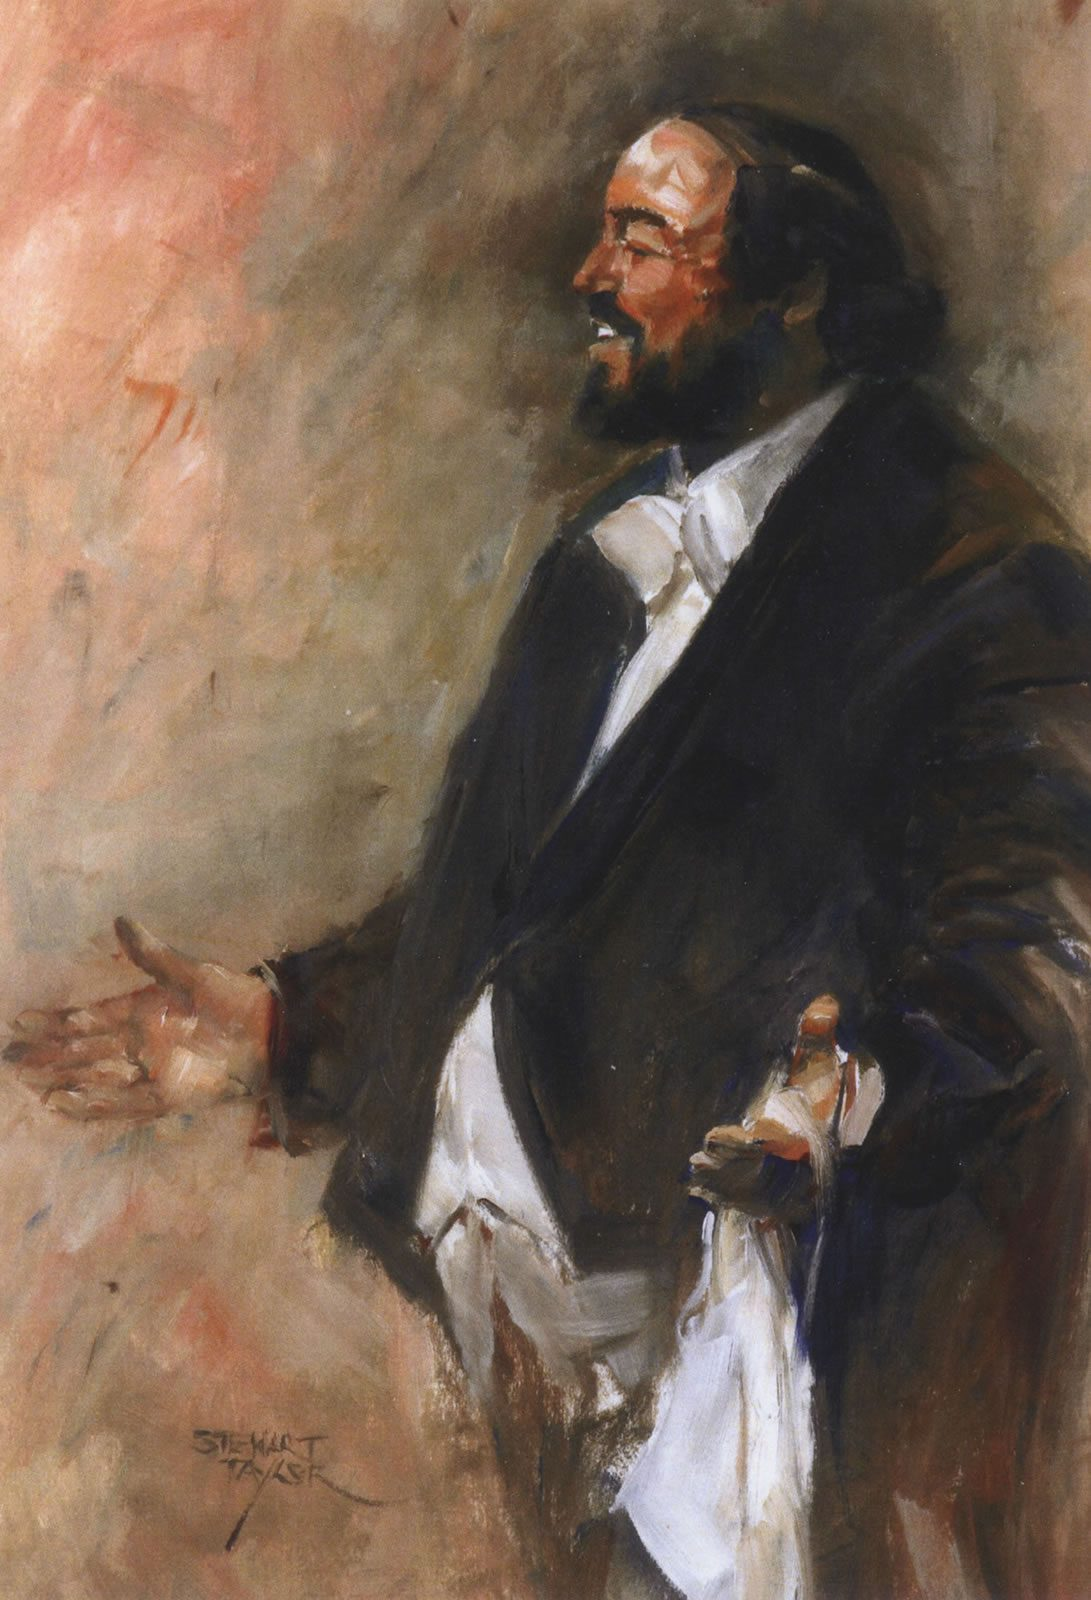 Oil painted portrait of Pavarotti by East Yorkshire artist Stewart Taylor